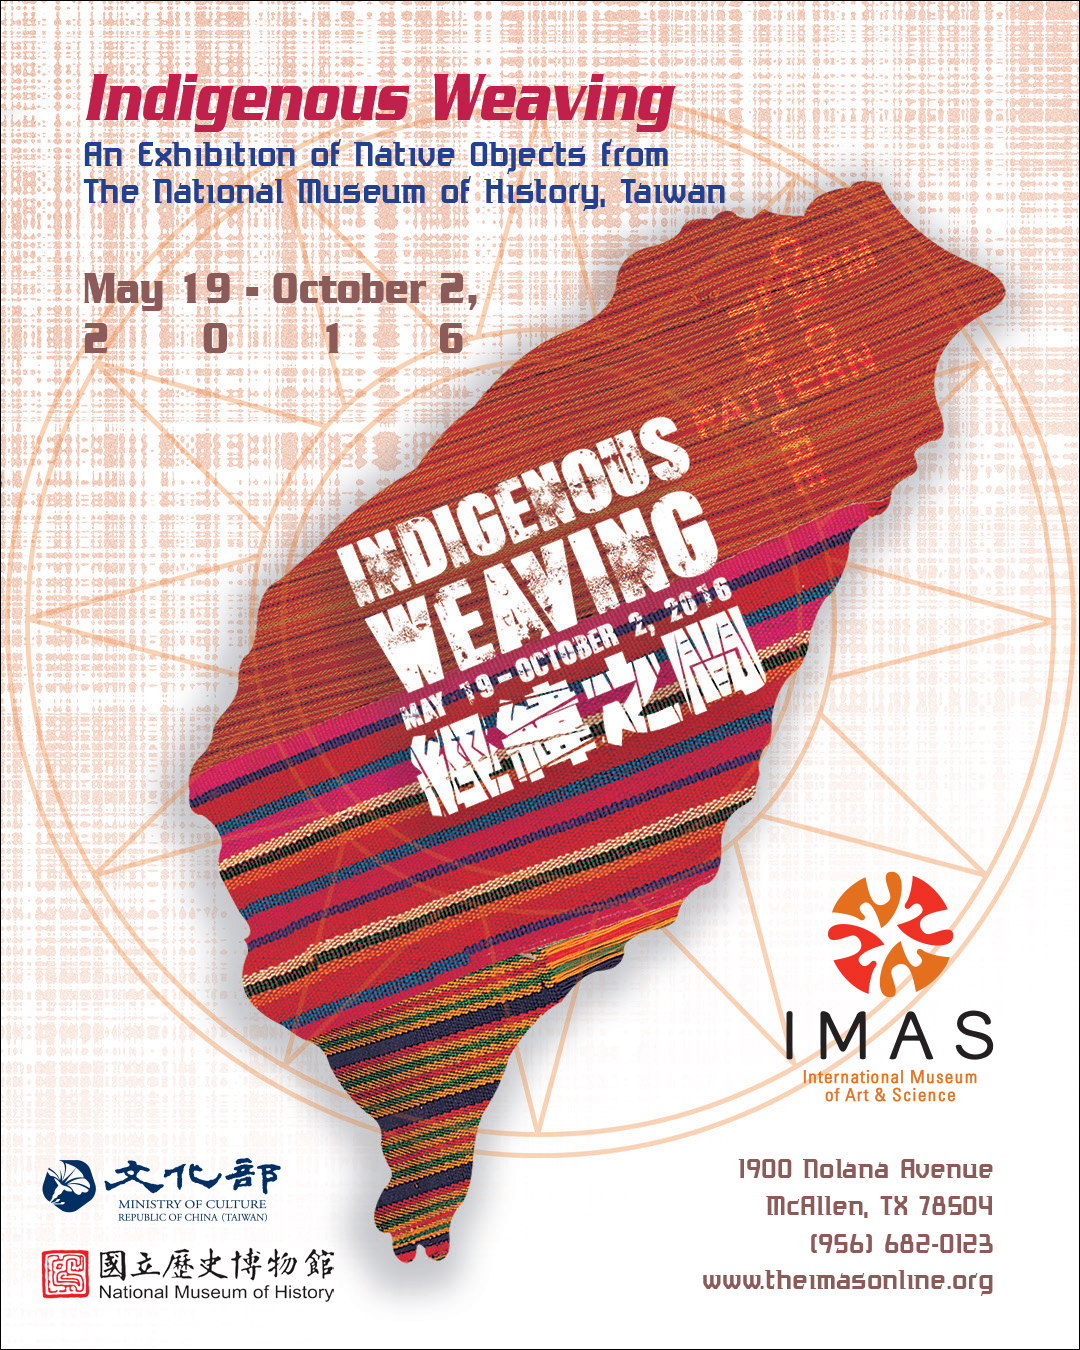 imas_indigenous-weaving_npad copy